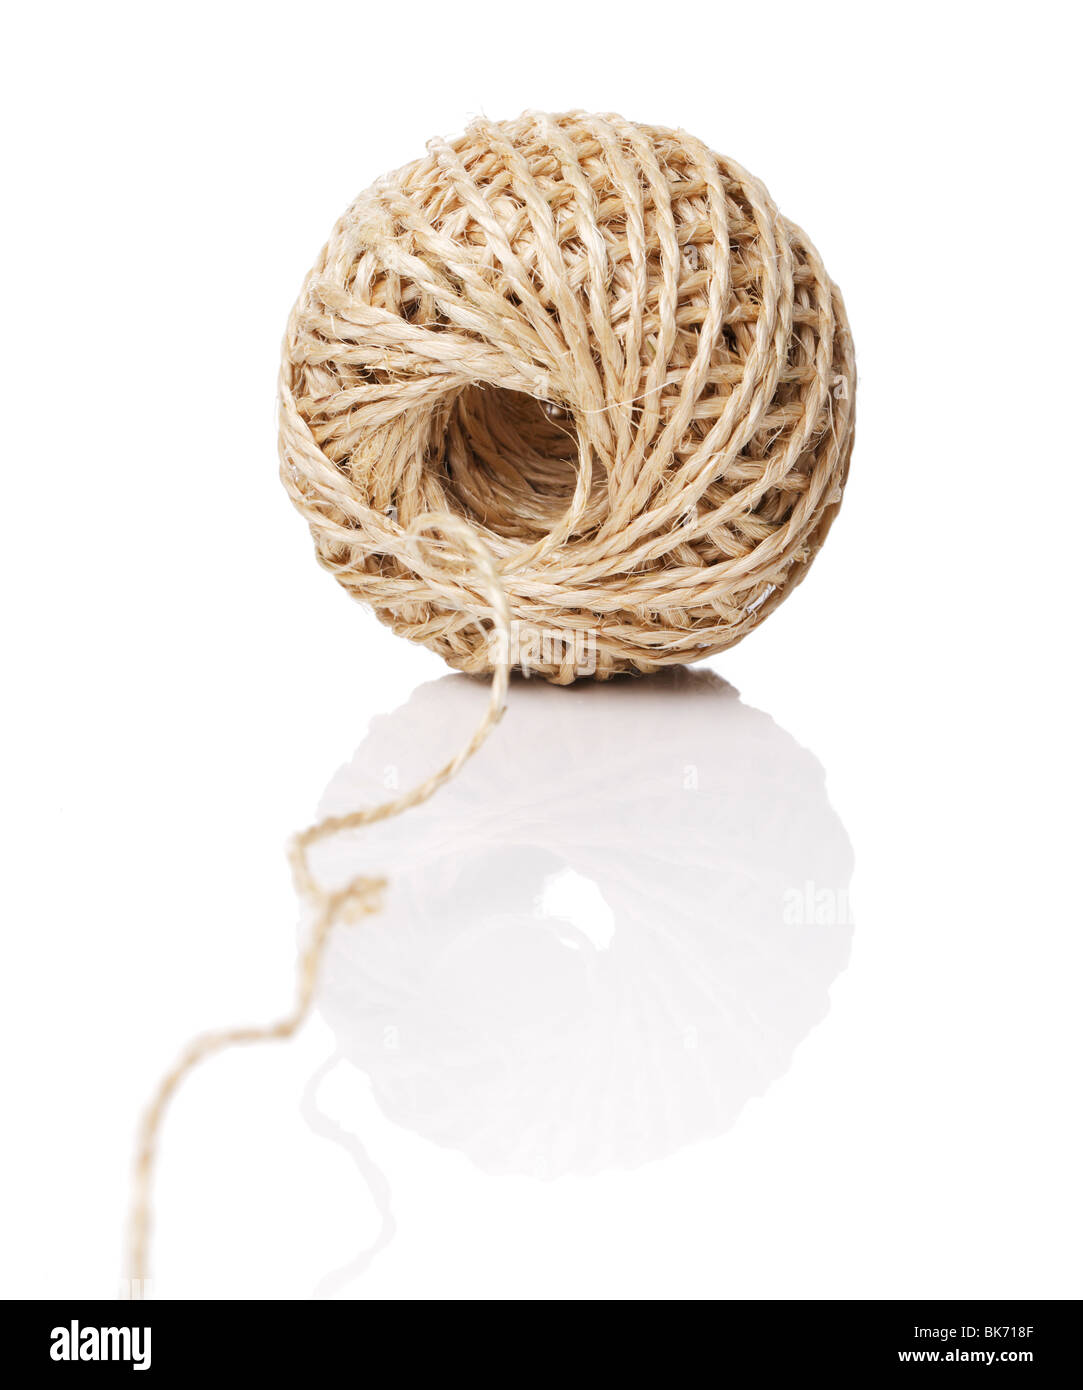 A Roll of natural fiber string on reflective background. - Stock Image